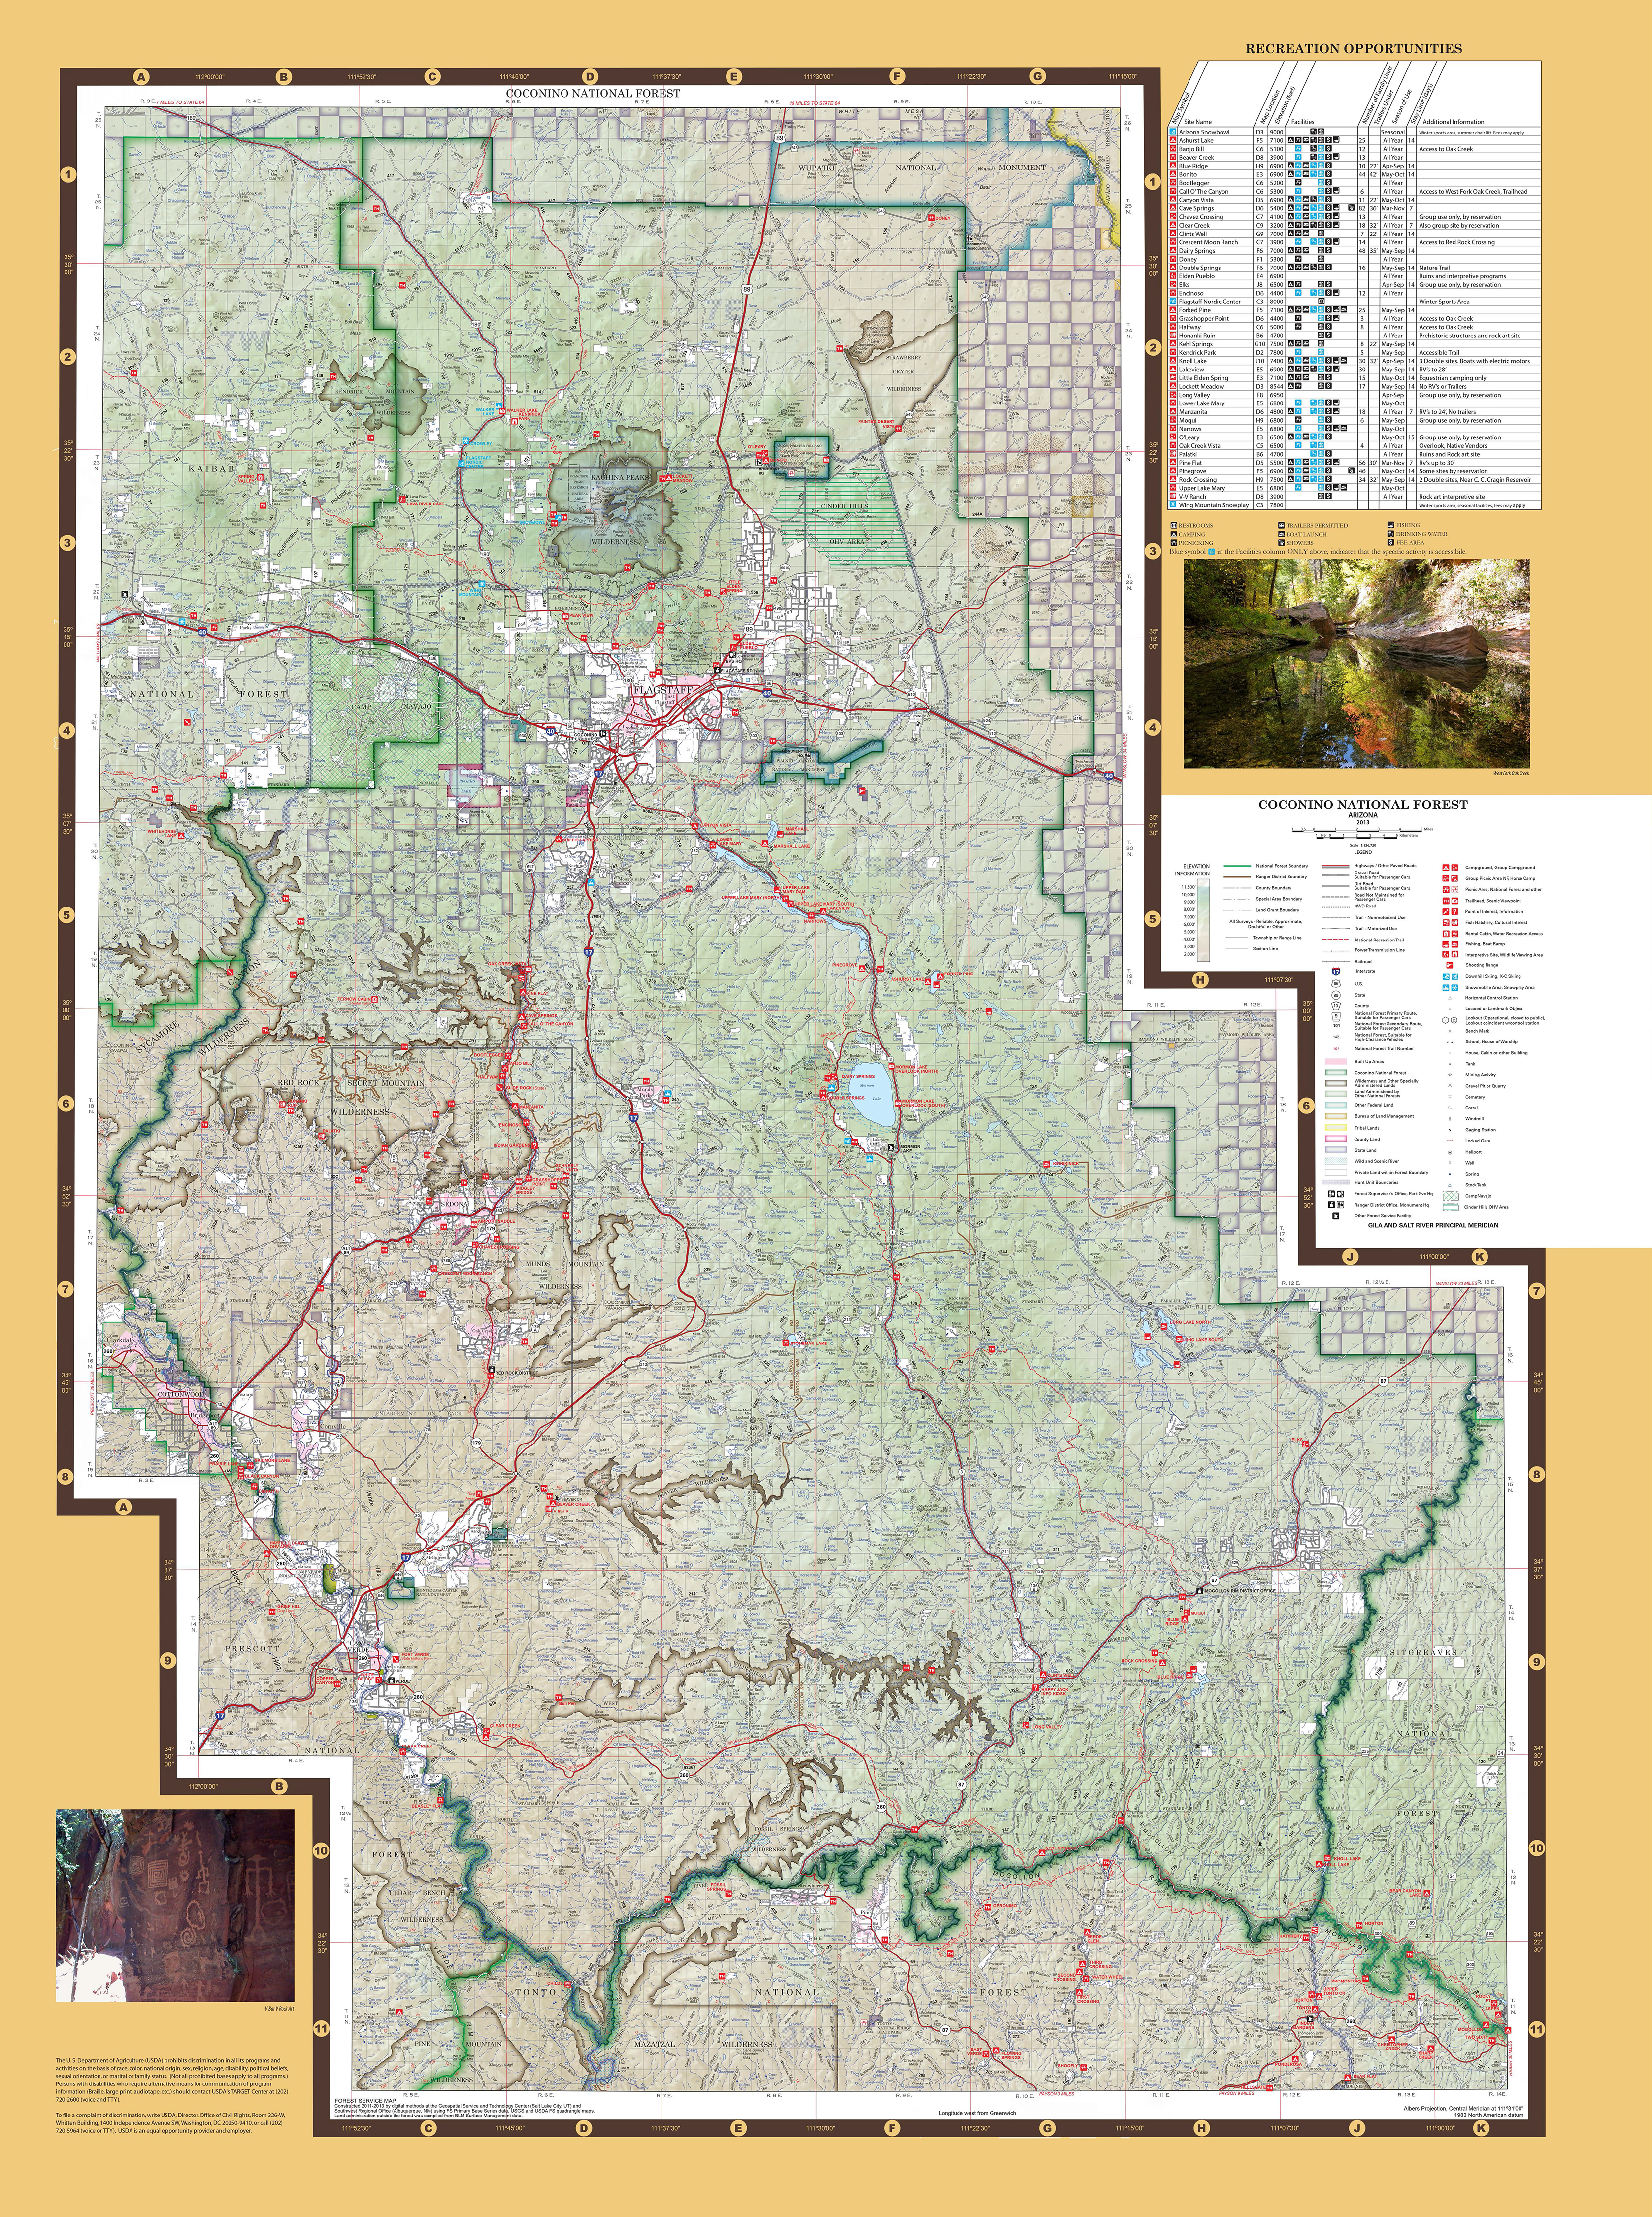 Coconino National Forest   Maps   Publications     13 MB